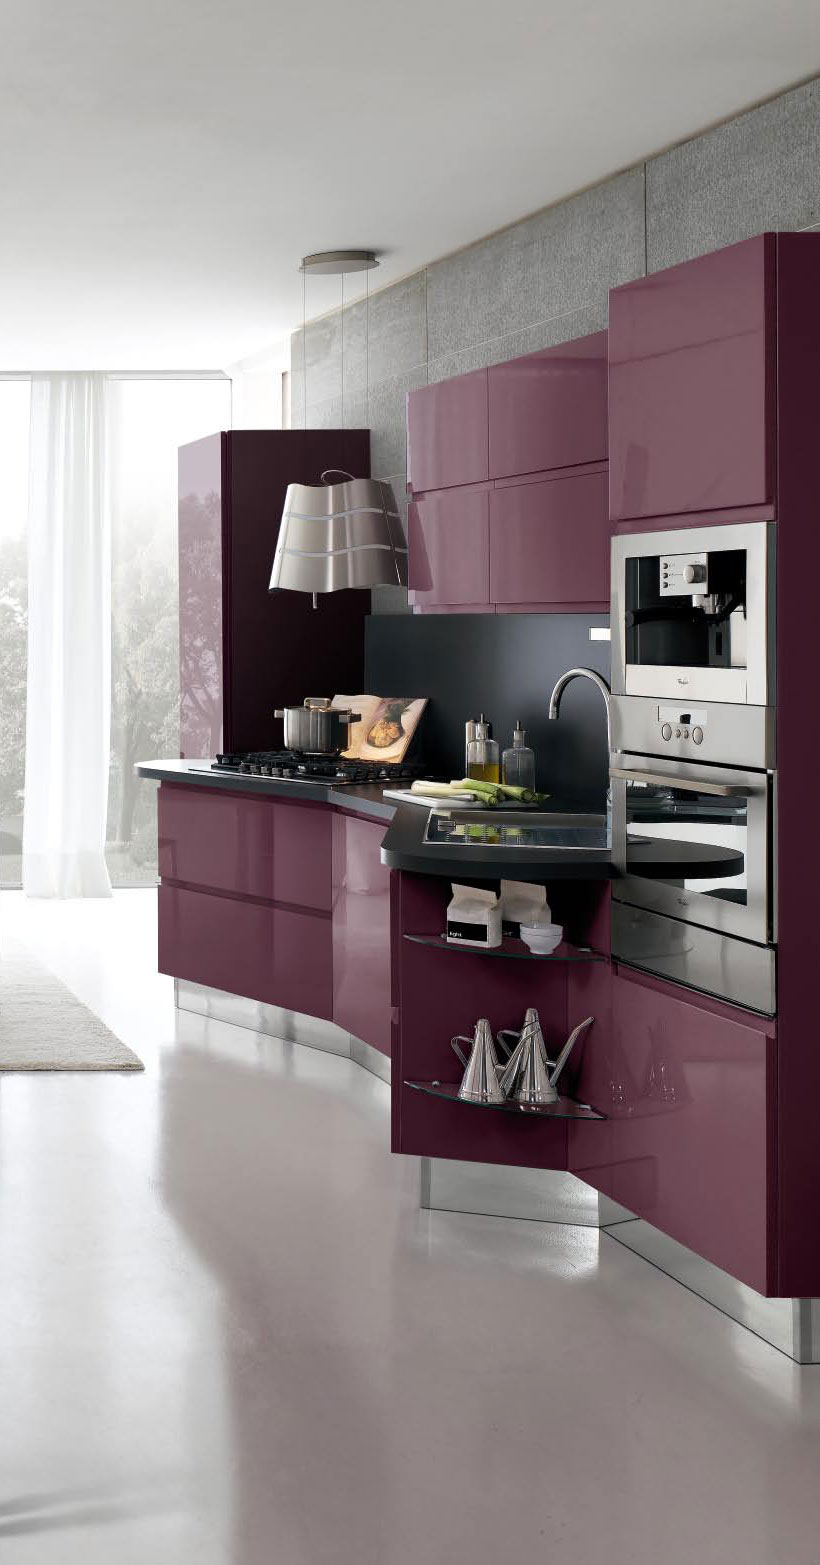 What Is New In Kitchen Design Dream House Experience